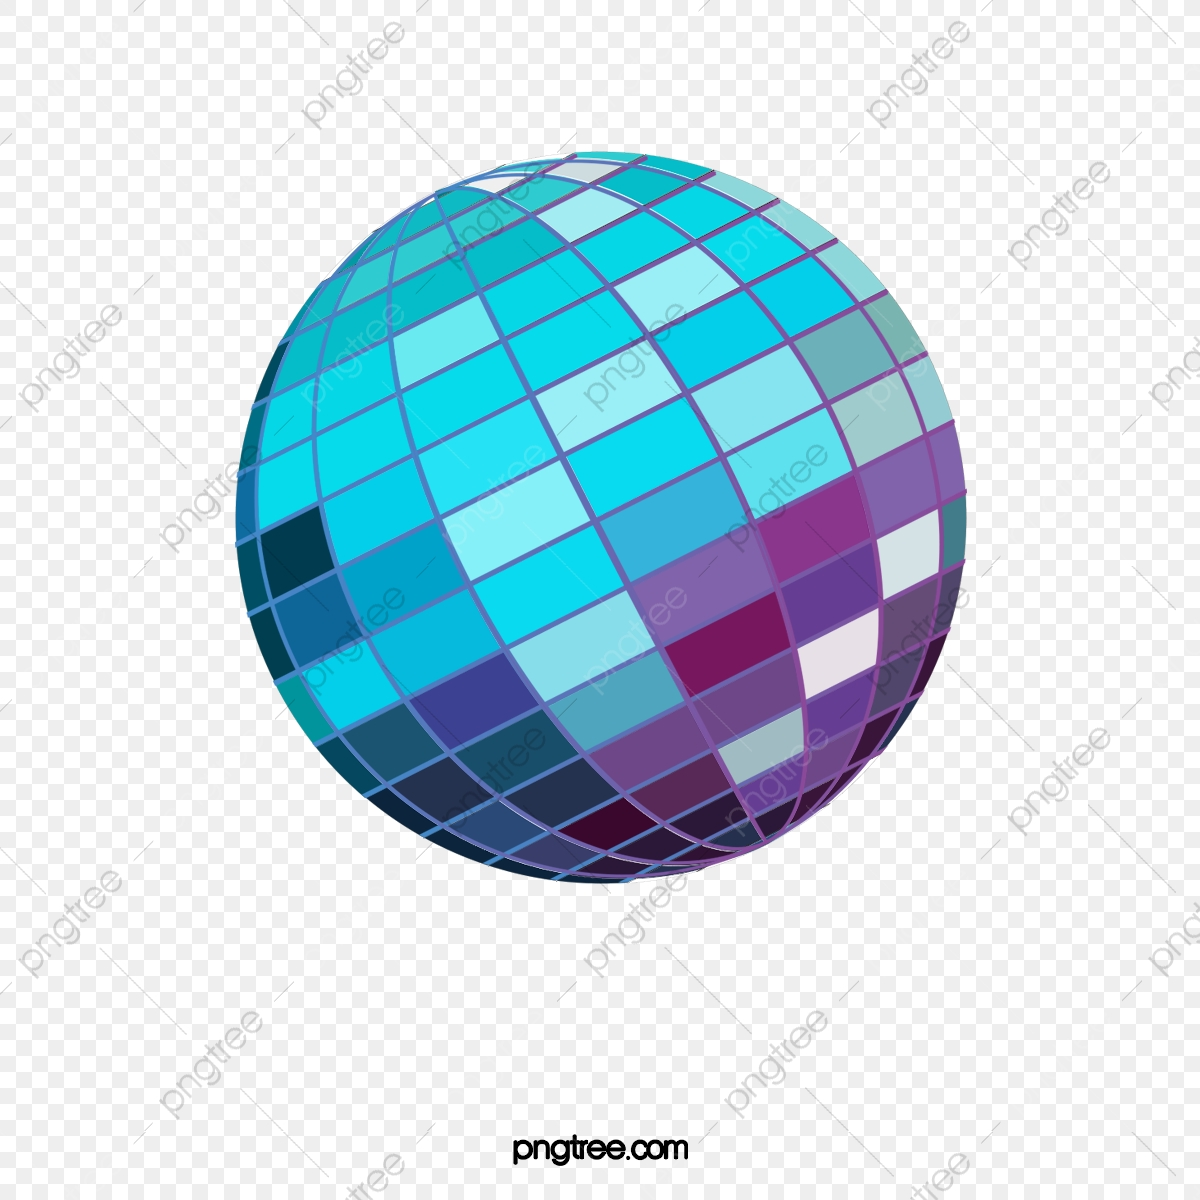 hight resolution of commercial use resource upgrade to premium plan and get license authorization upgradenow blue disco ball